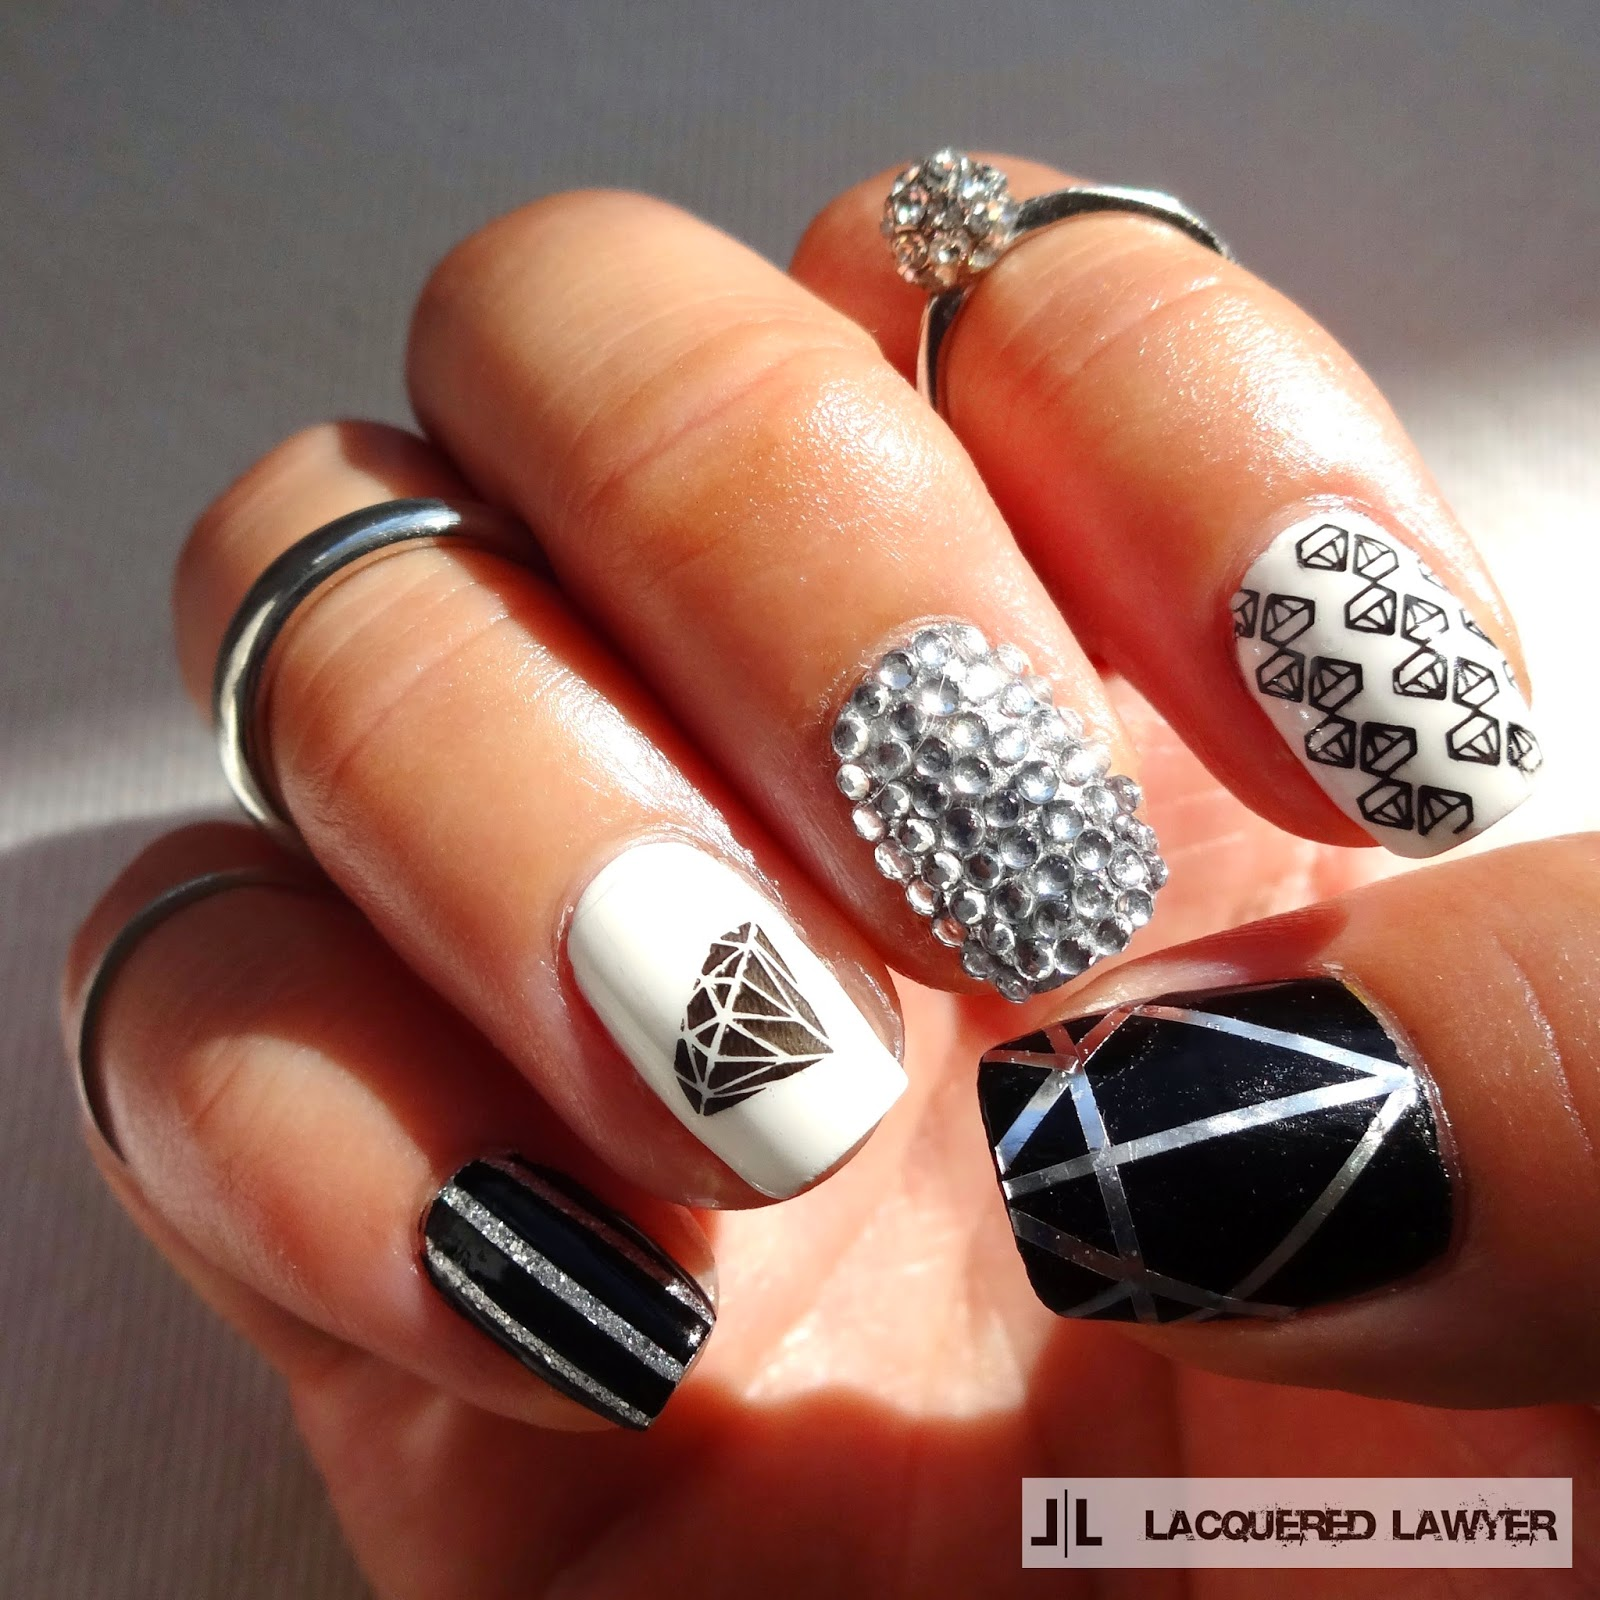 Diamonds Nail Art Design Ideas: Nail Art Blog: Shine Bright Like A Diamond